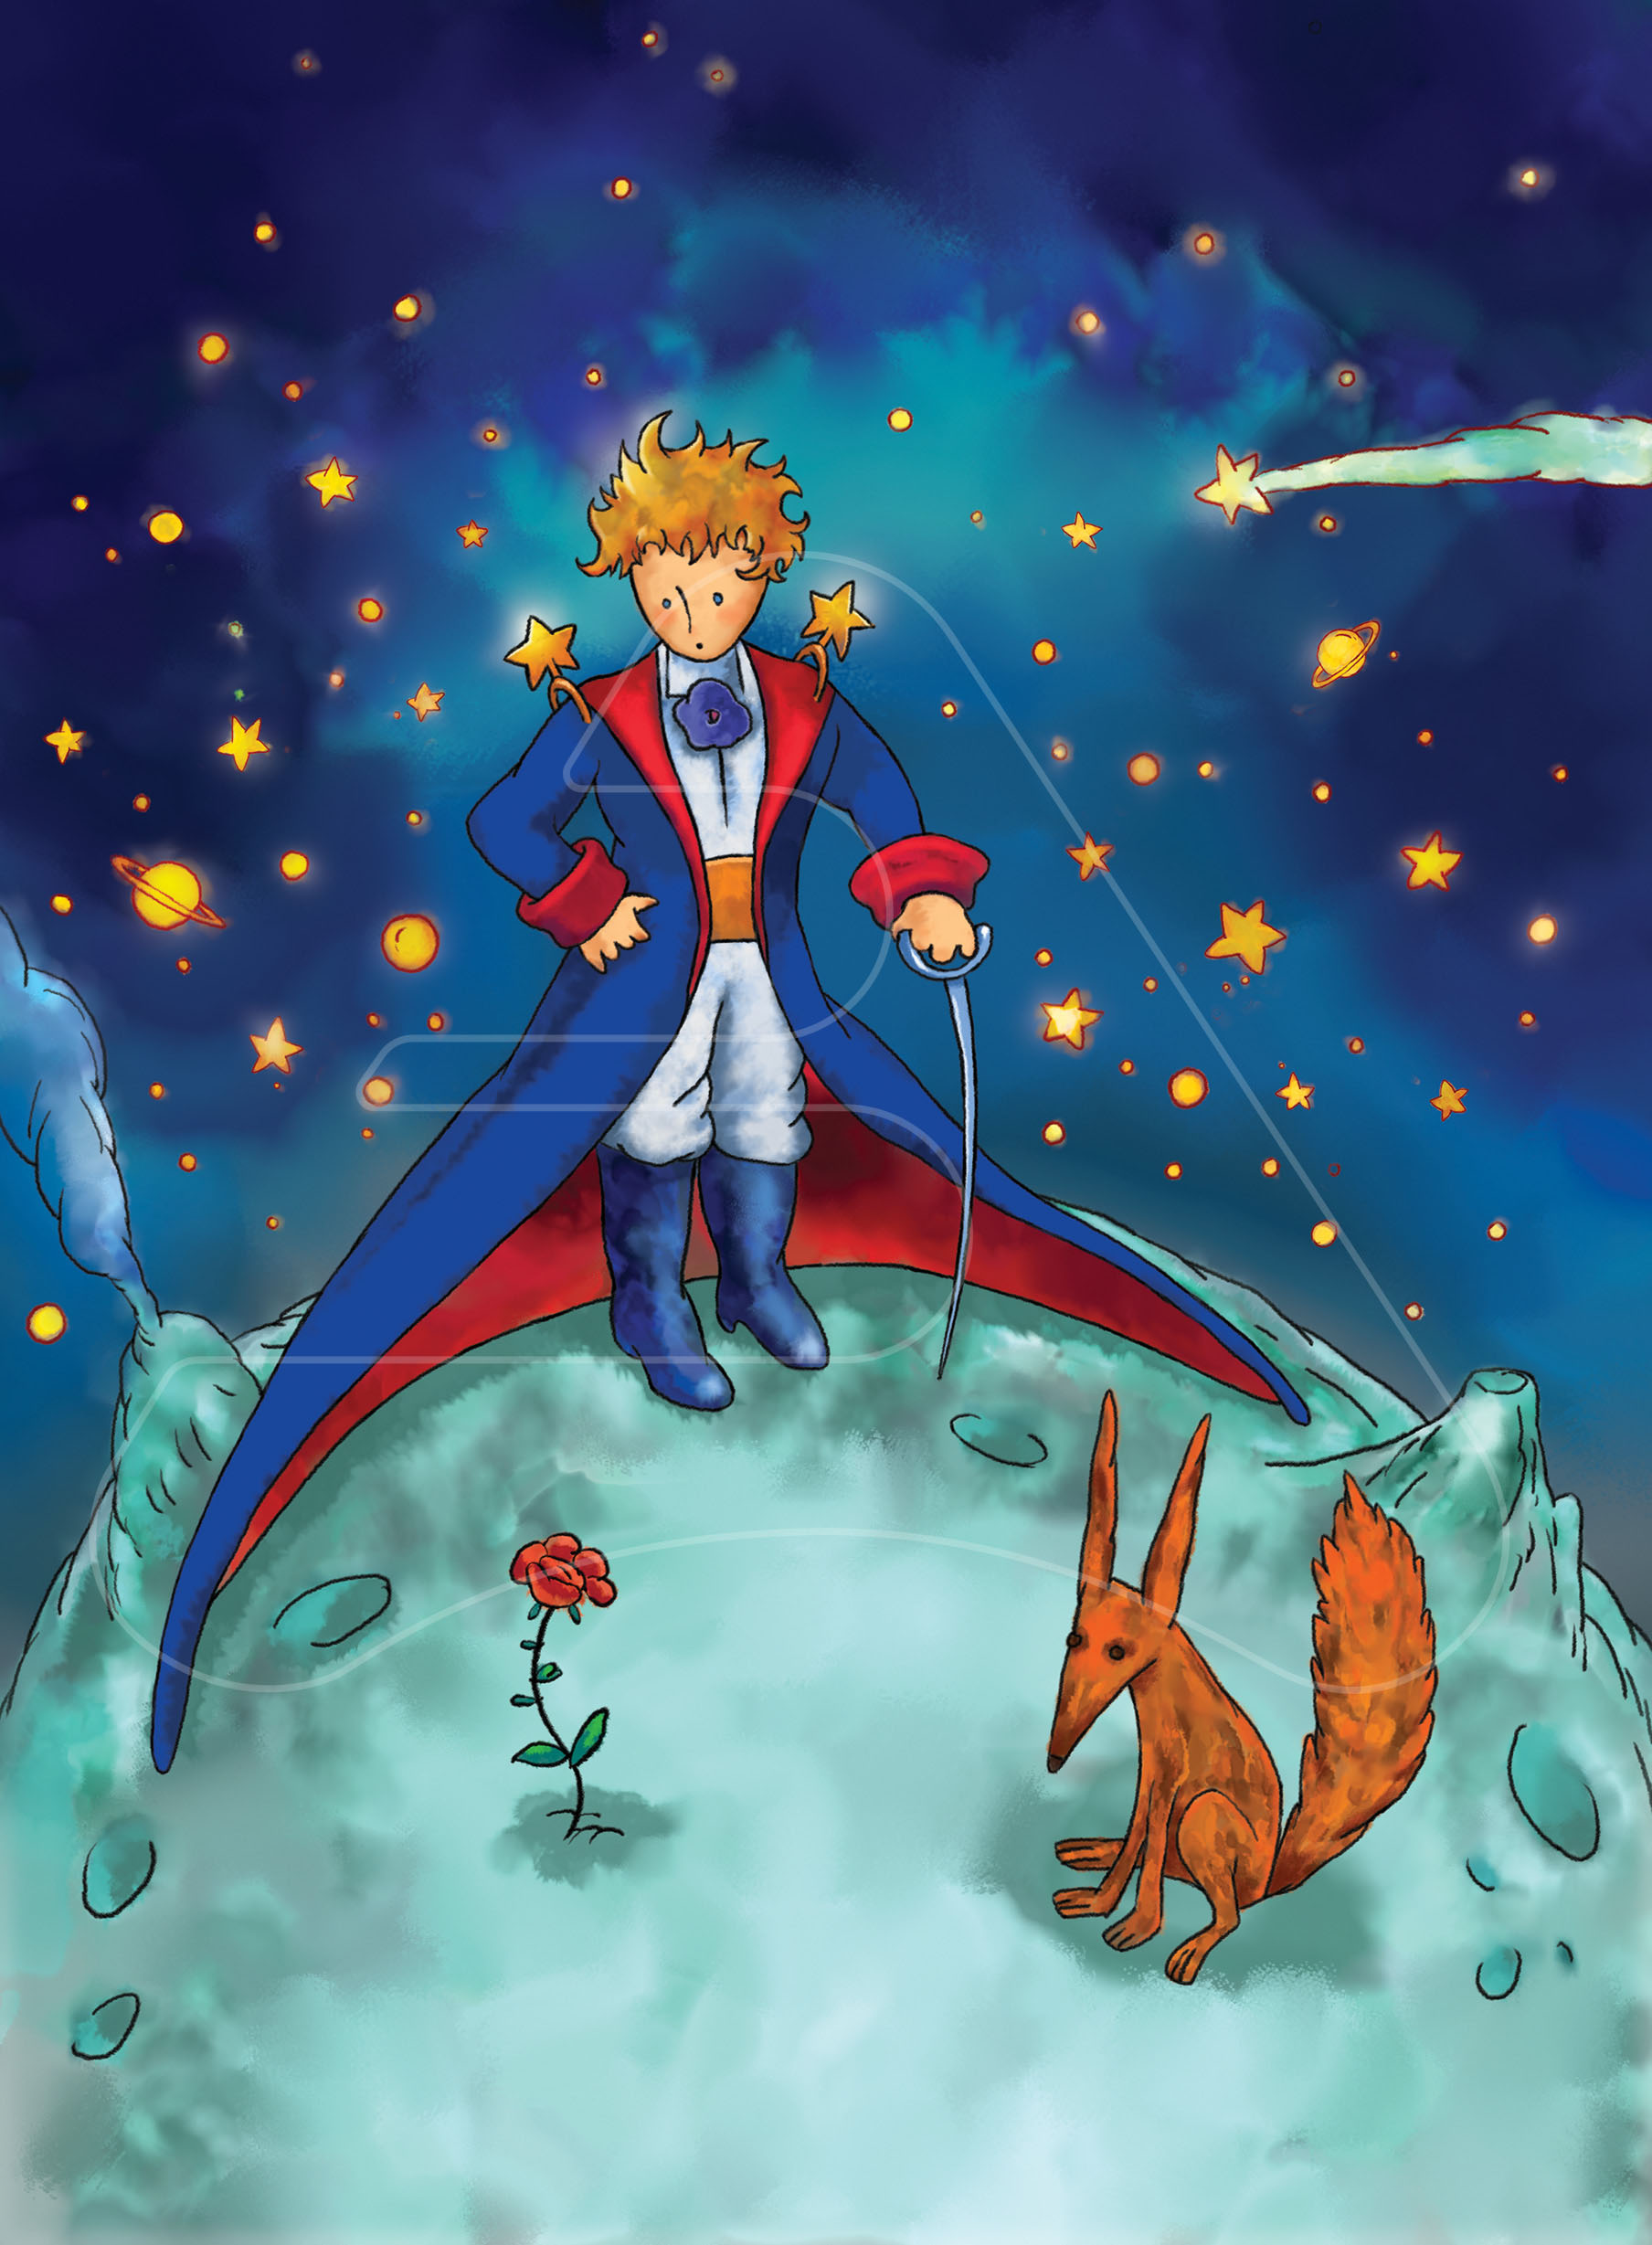 The Little prince / Watercolor